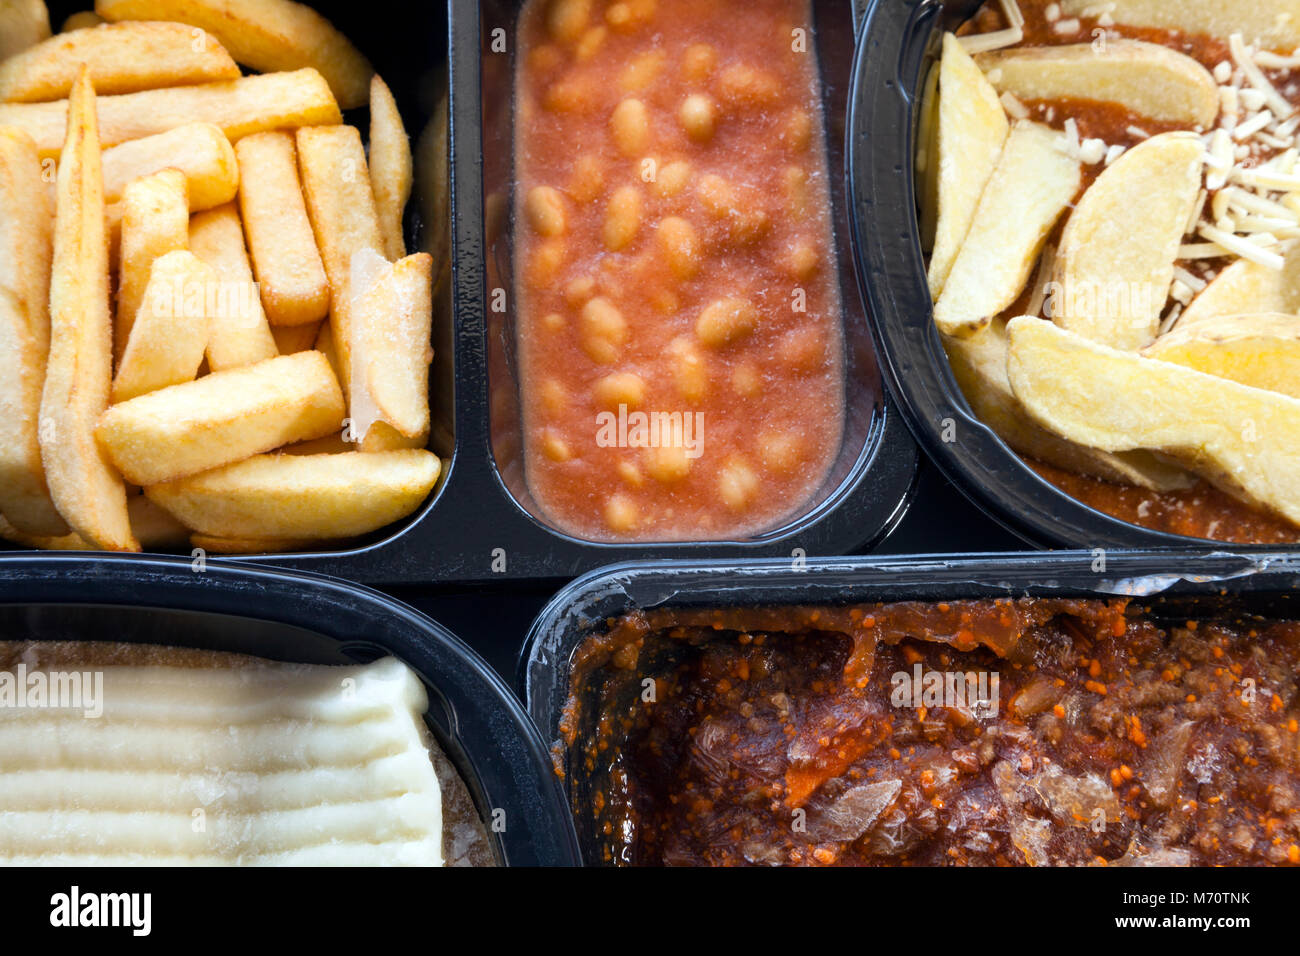 Selection of frozen, processed, ready made foods, consisting of potato chips, mince, lasagna in black, plastic containers - Stock Image